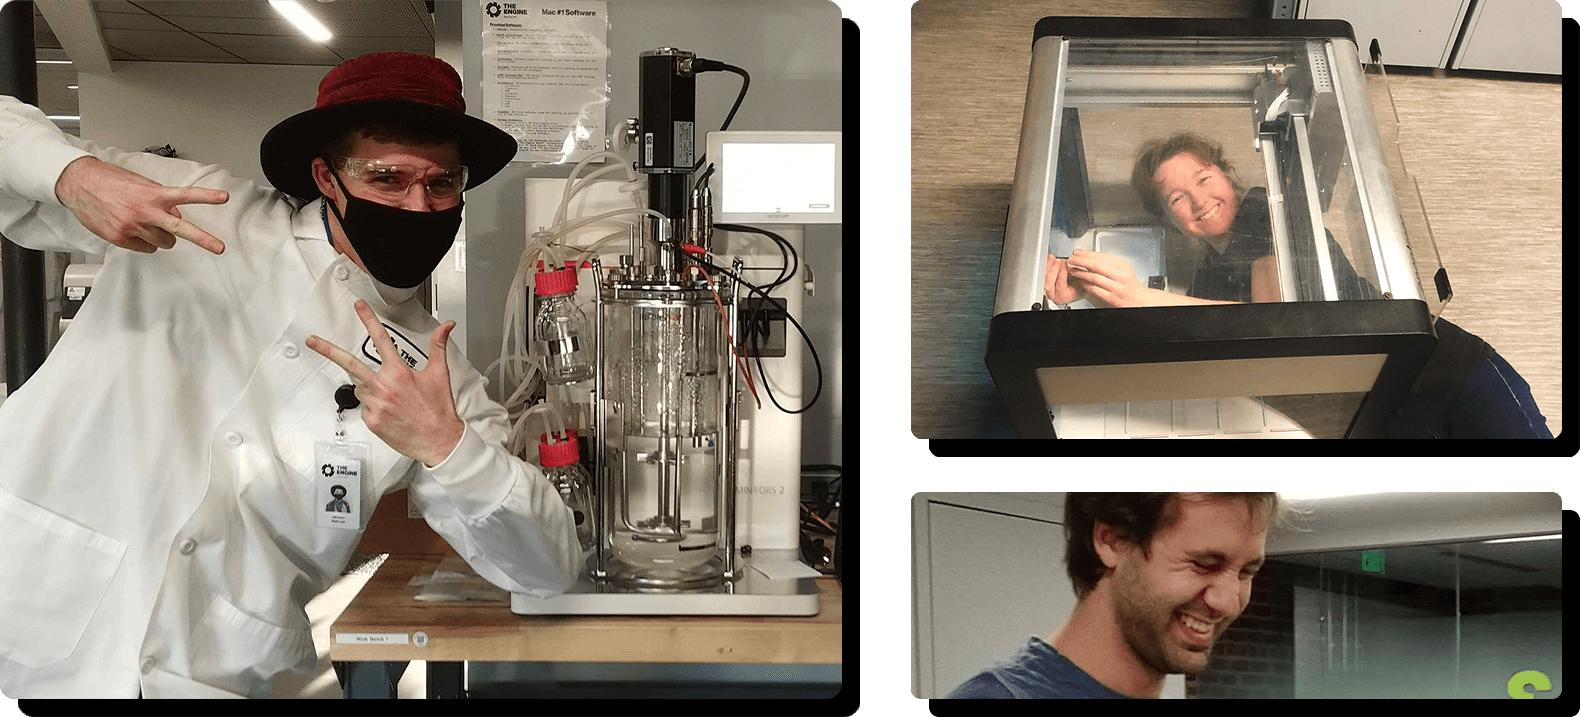 One Radix team member posing next to a bioreactor, another working on and in an Opentrons liquid handler robot